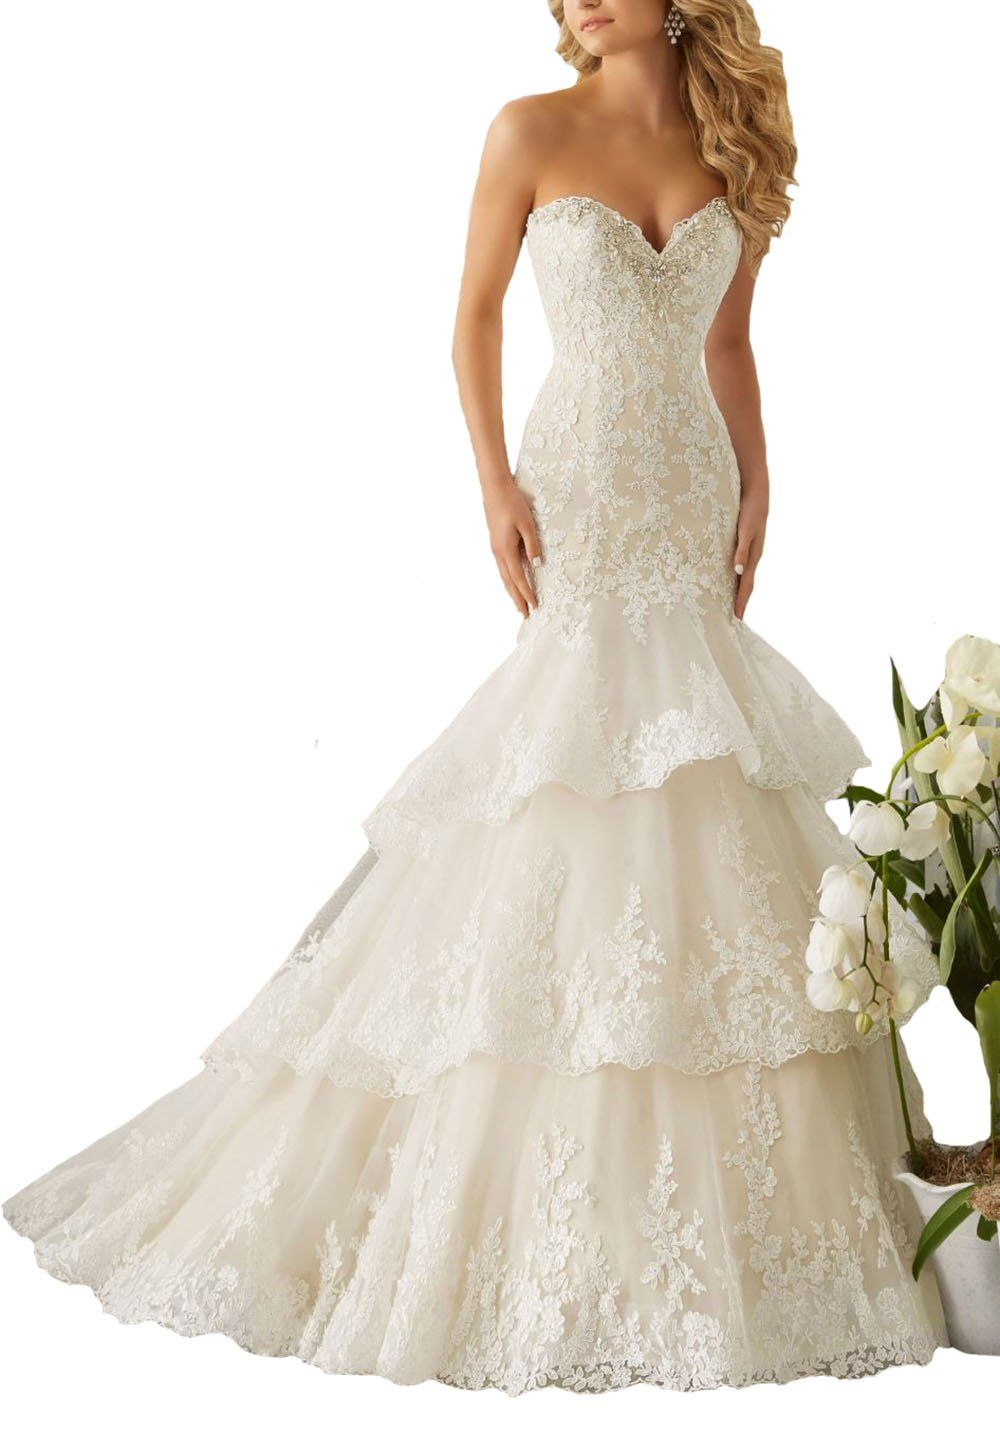 b6768c3a8f52 Firose Womens White Ivory Strapless Sweetheart Lace Mermaid Wedding Dresses  Bridal Gowns for Bride Ivory 10     To view further for this item